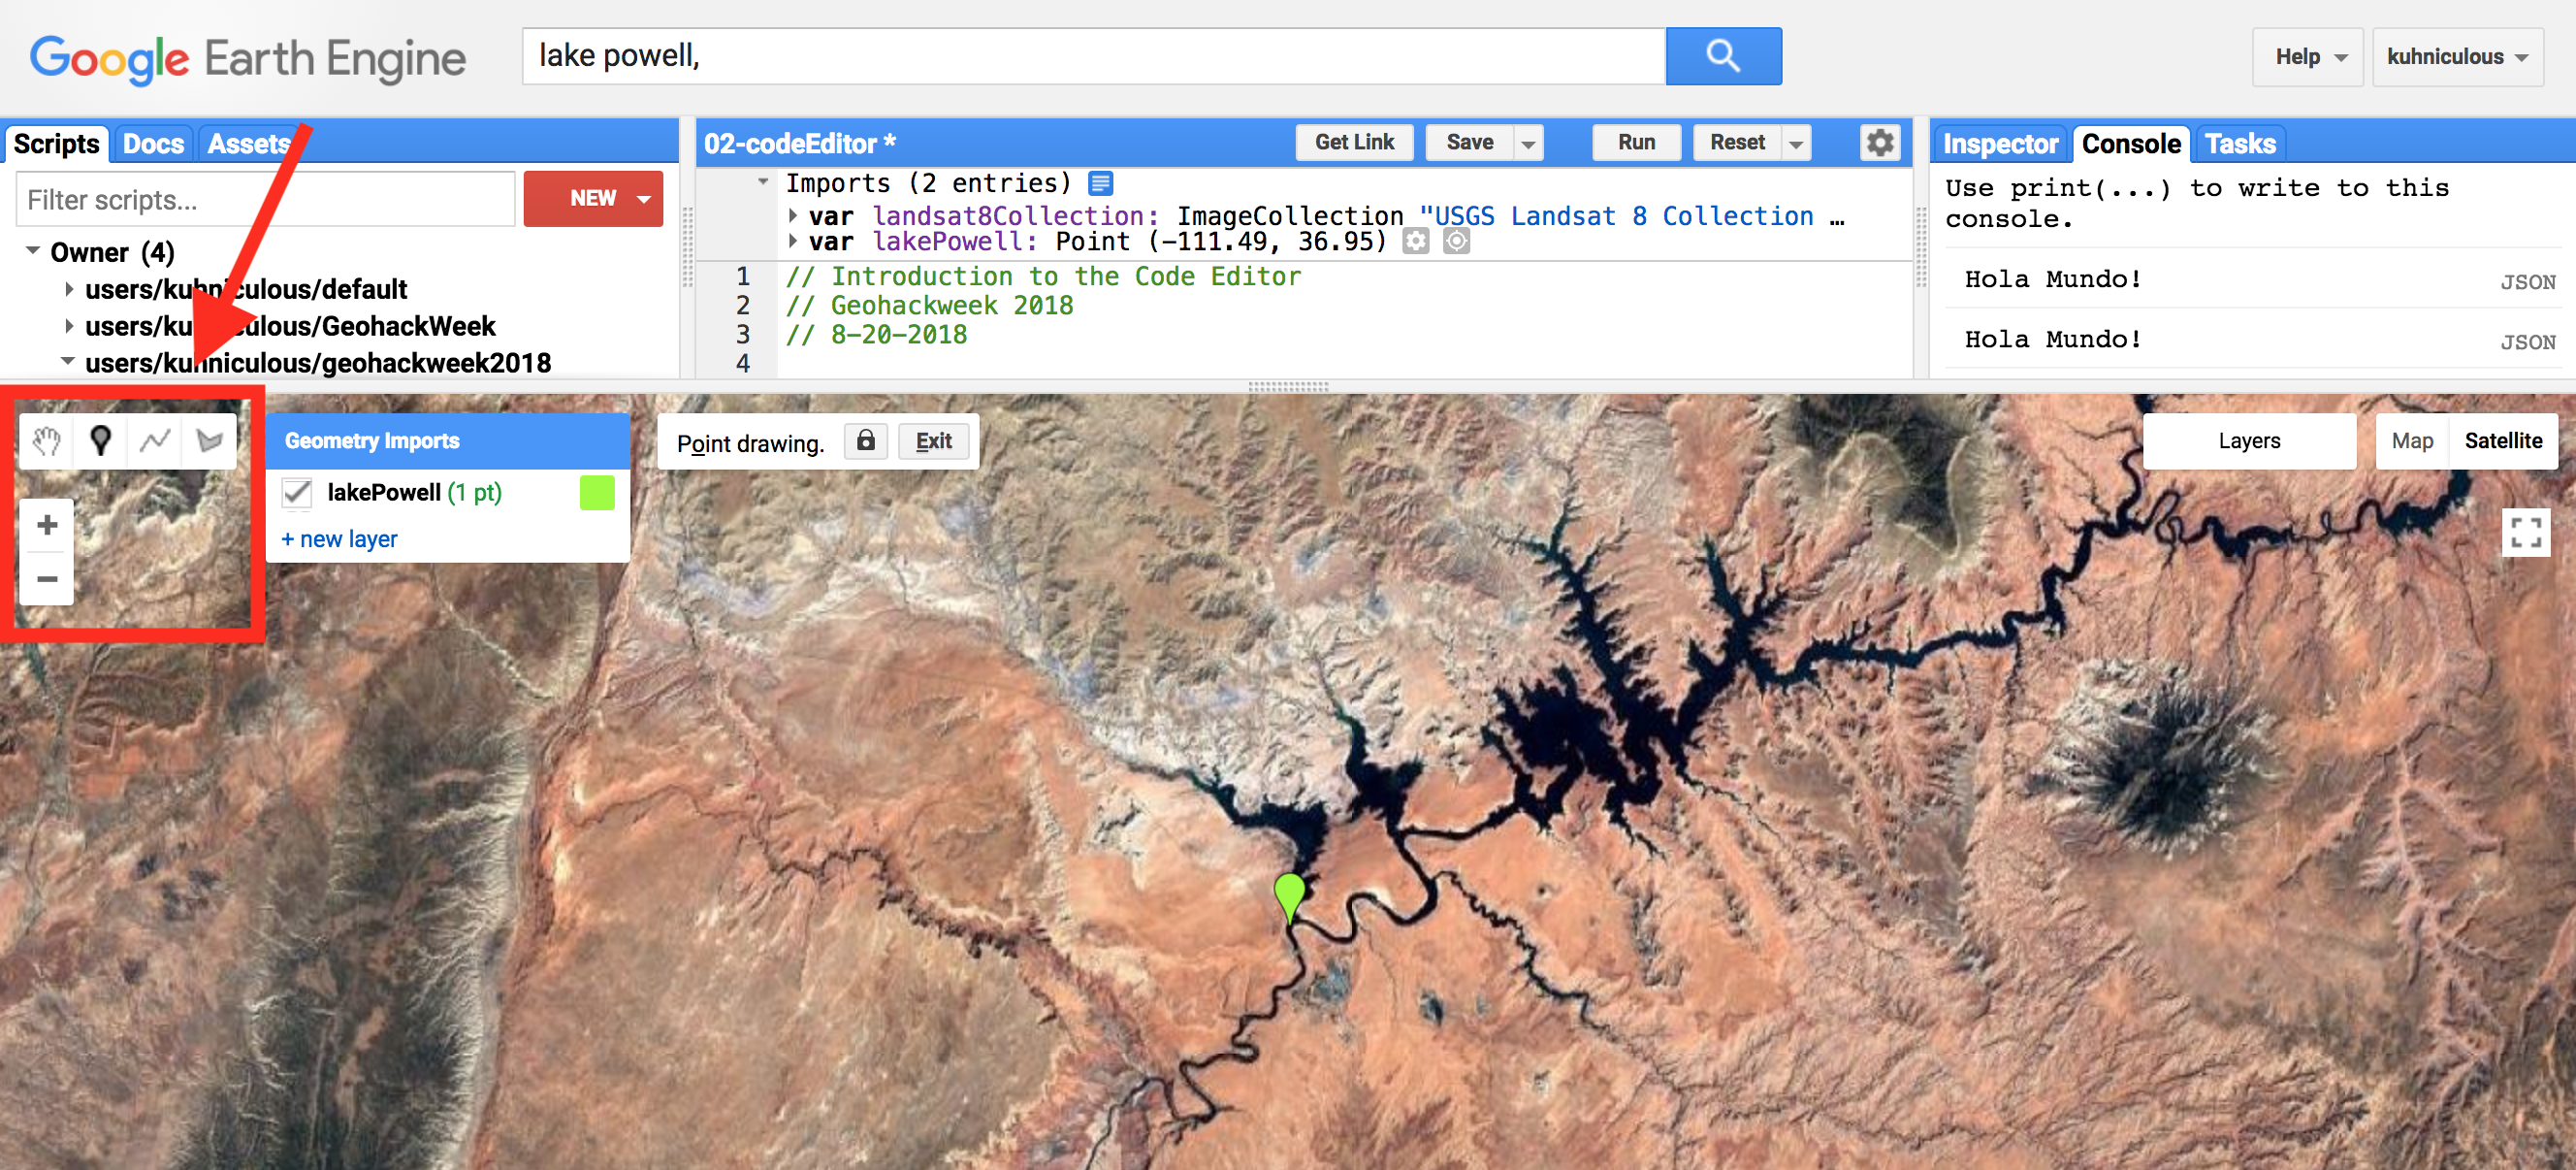 Google Earth Engine: Code Editor